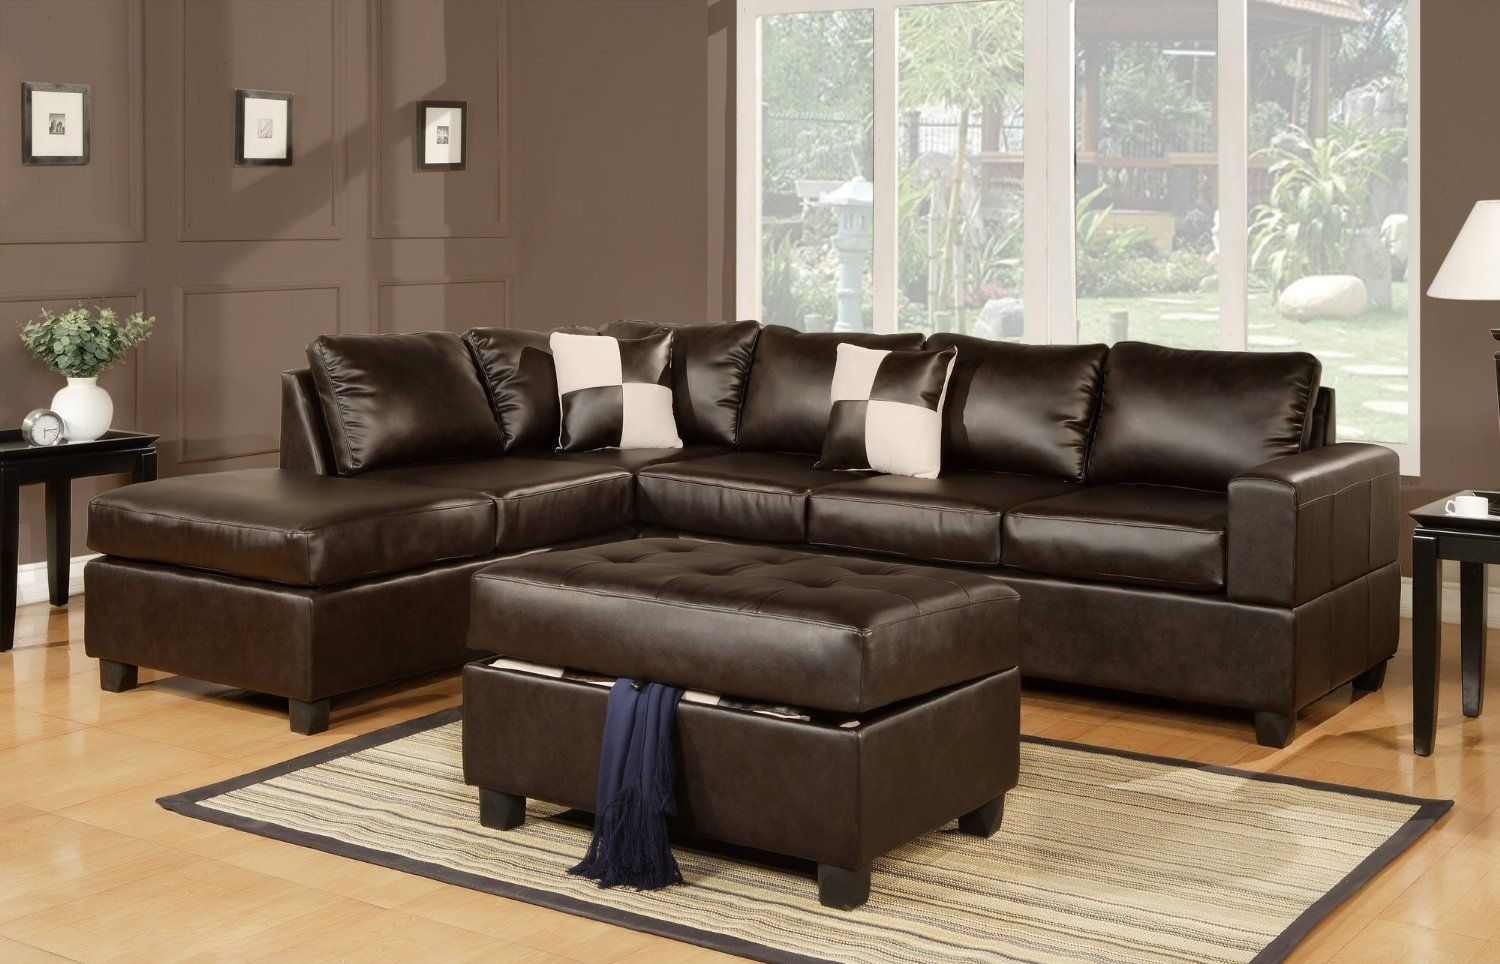 Bobkona Soft Touch Reversible Bonded Leather Match 3 Piece. English Living Room Furniture. 25 Elegant Living Room Onmovie. Artwork Arrangementfortable Plump Couch and Chairs Estate